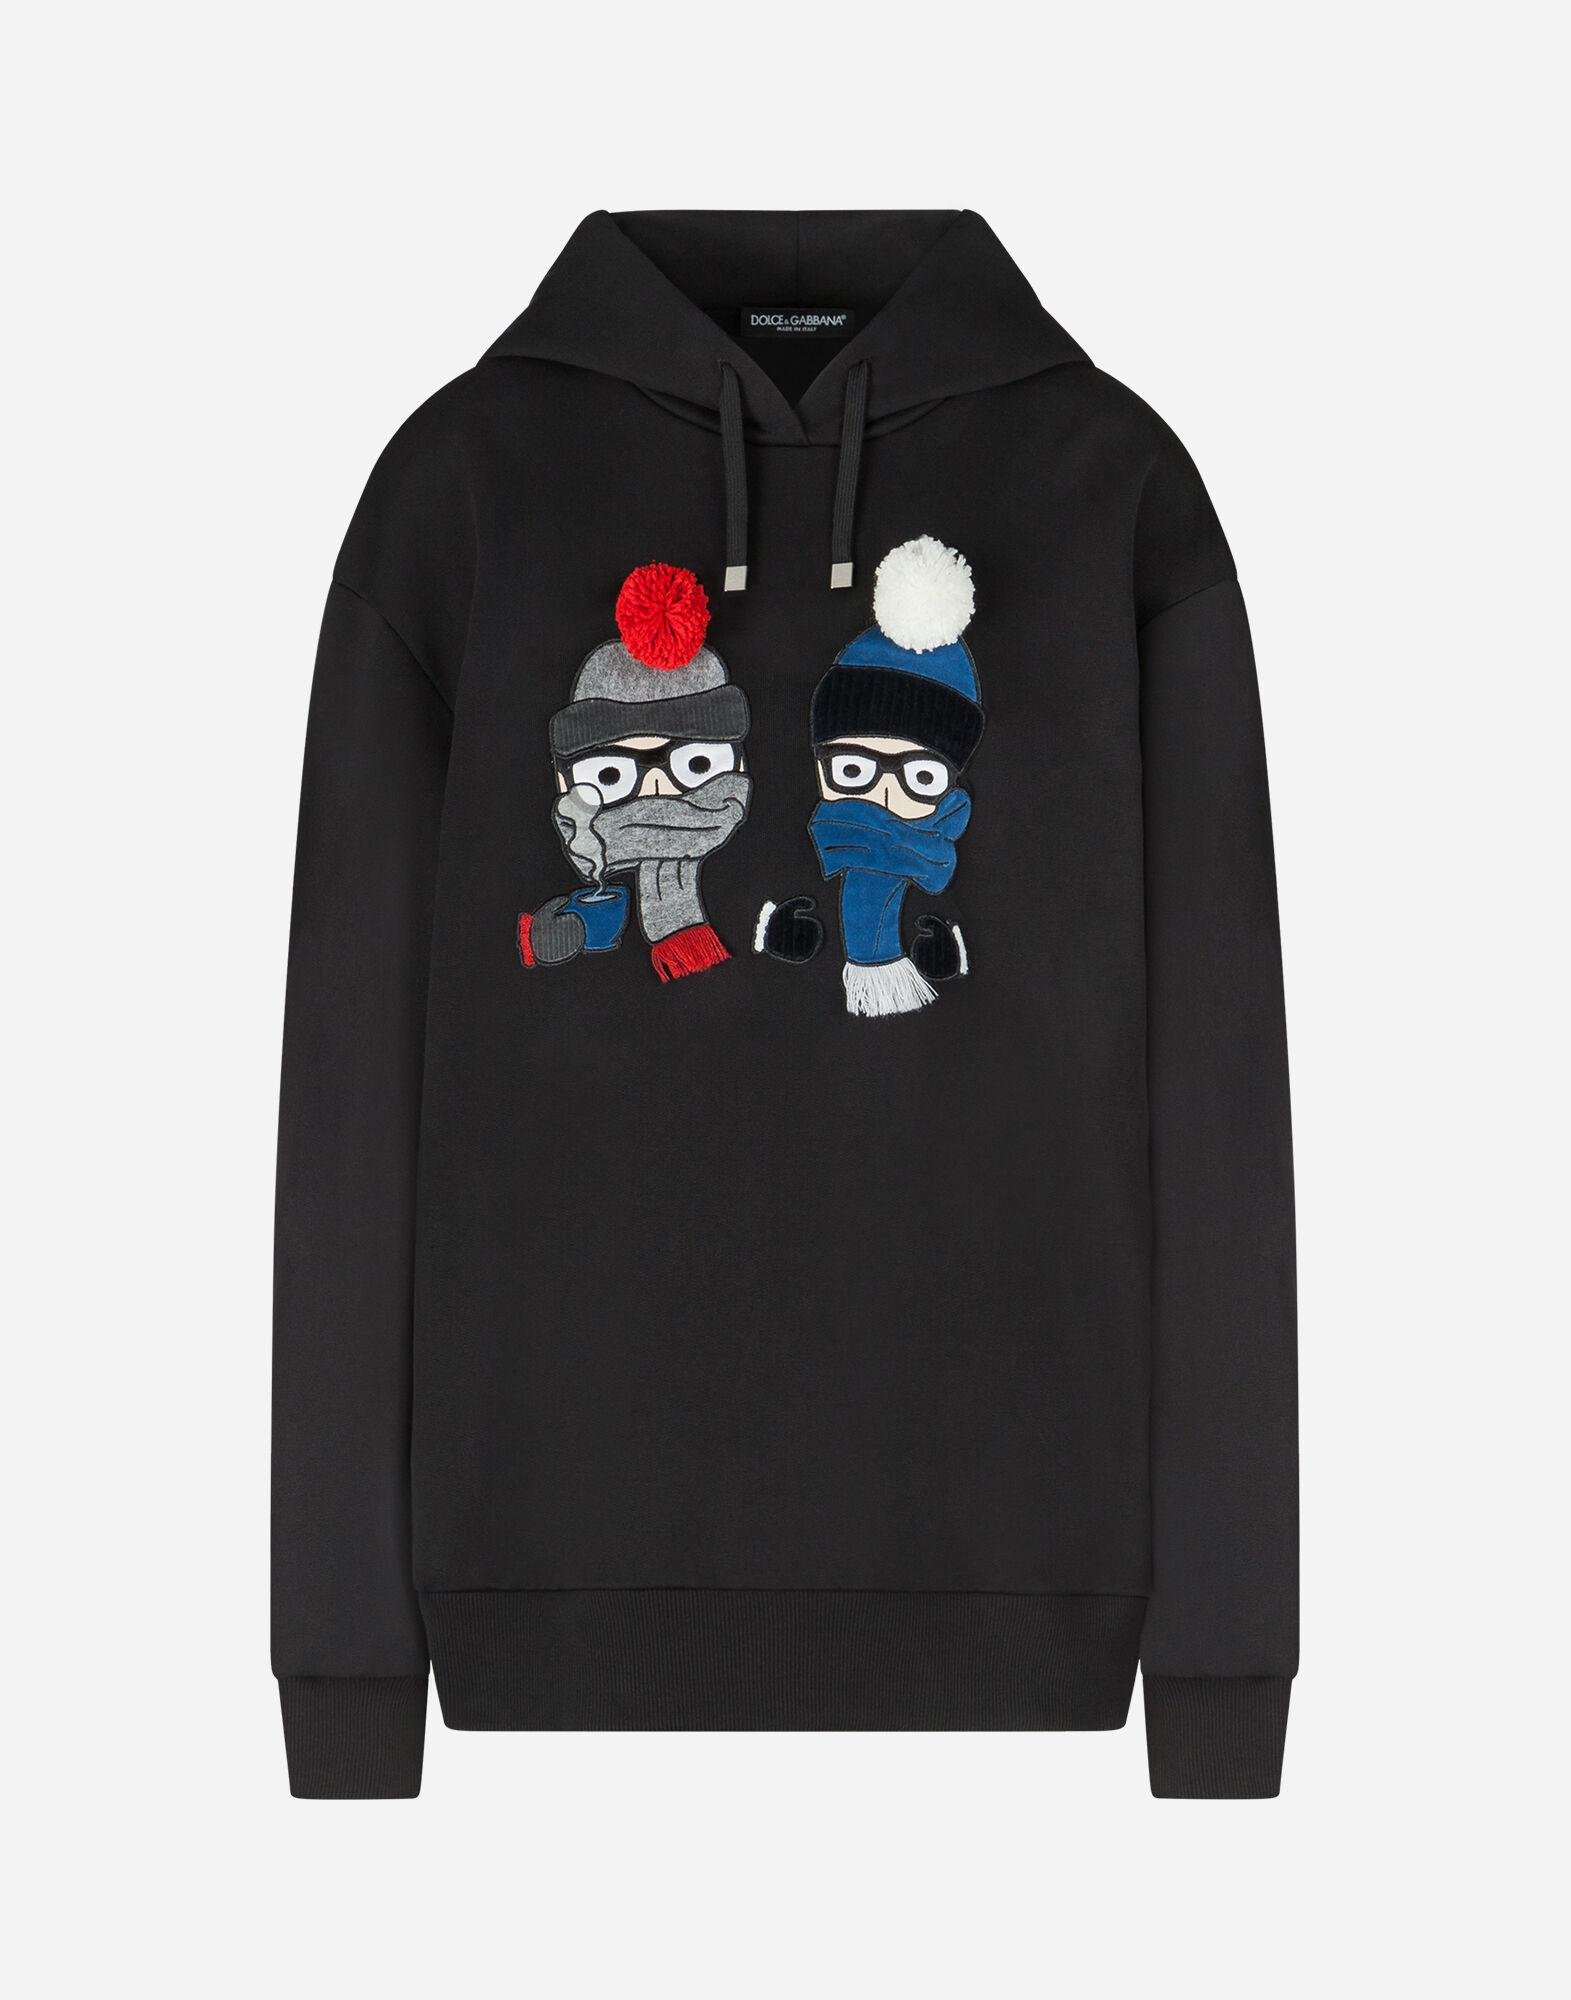 Hoodie with patches of the designers 4